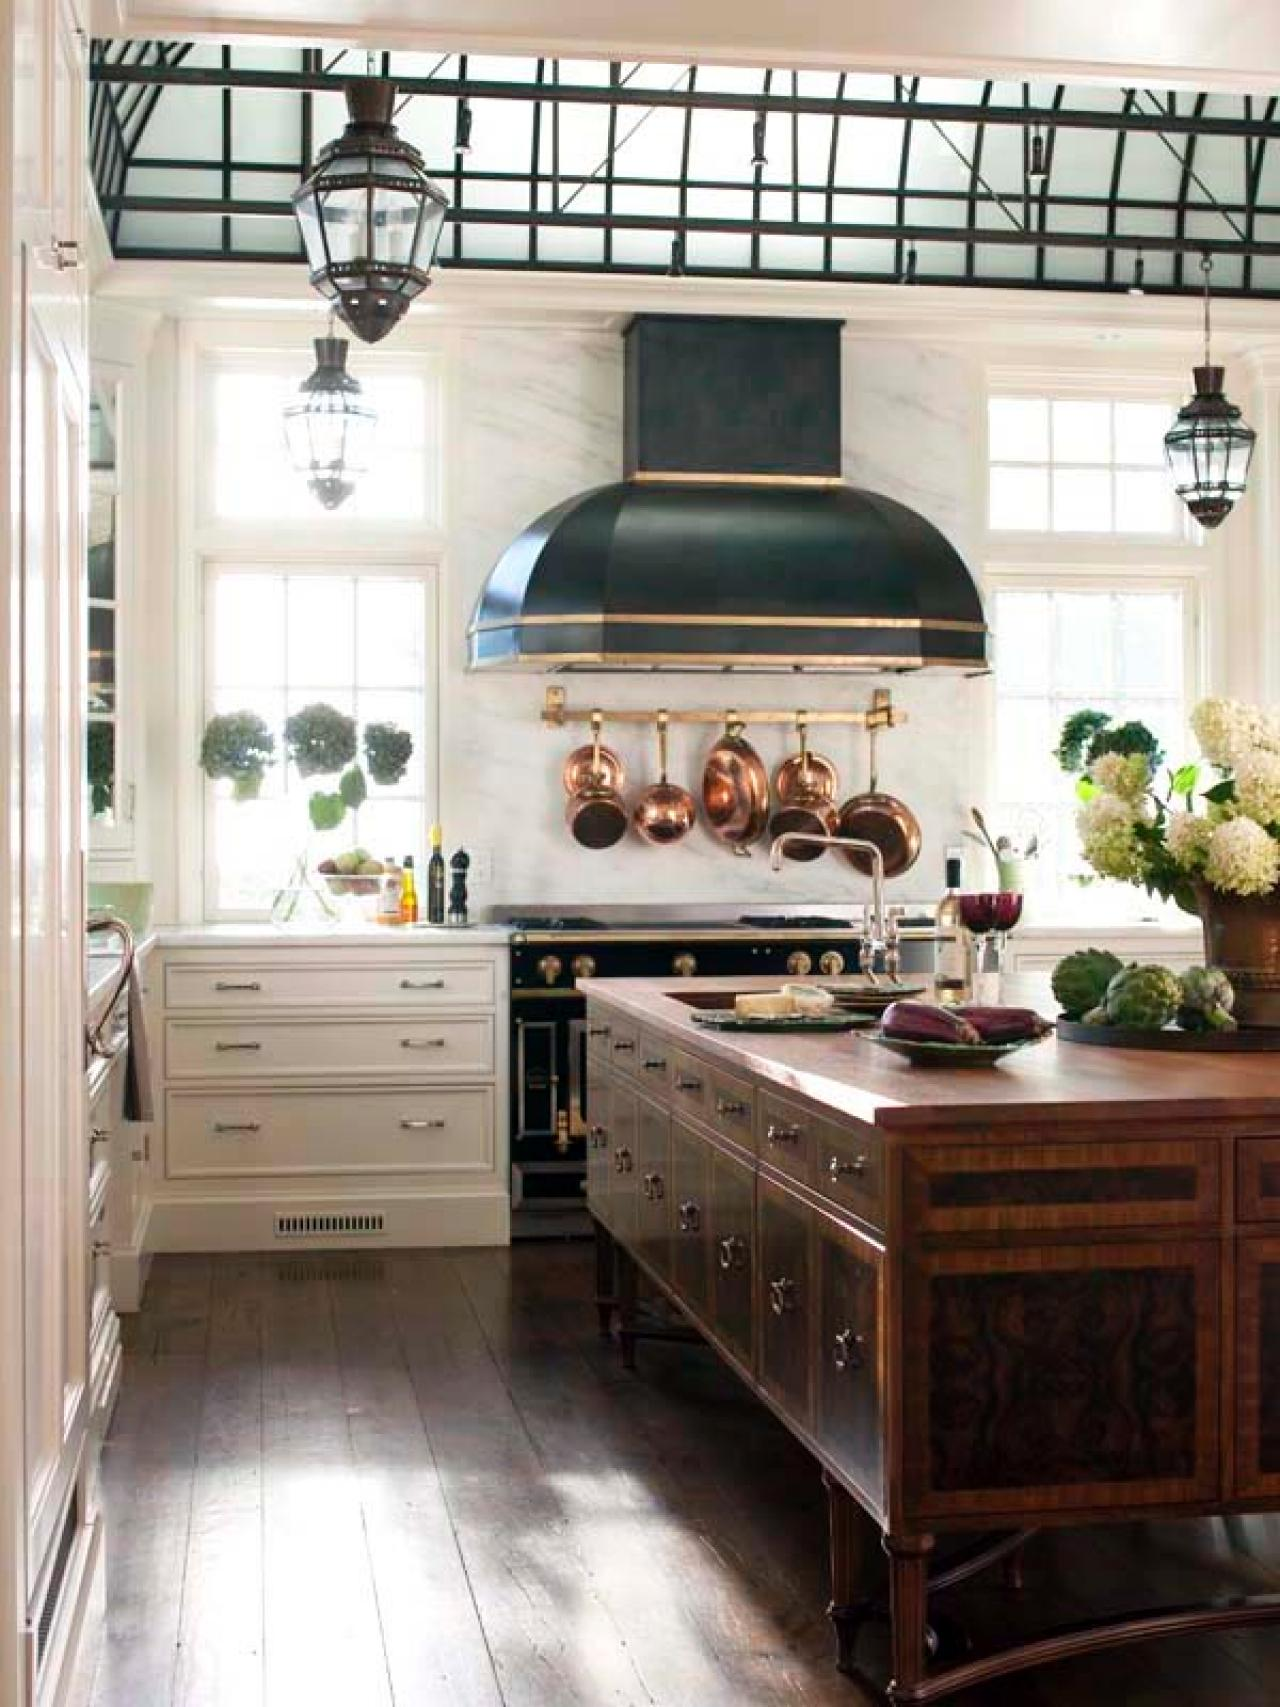 Old world kitchen designs photo gallery - Old World Craftsmanship